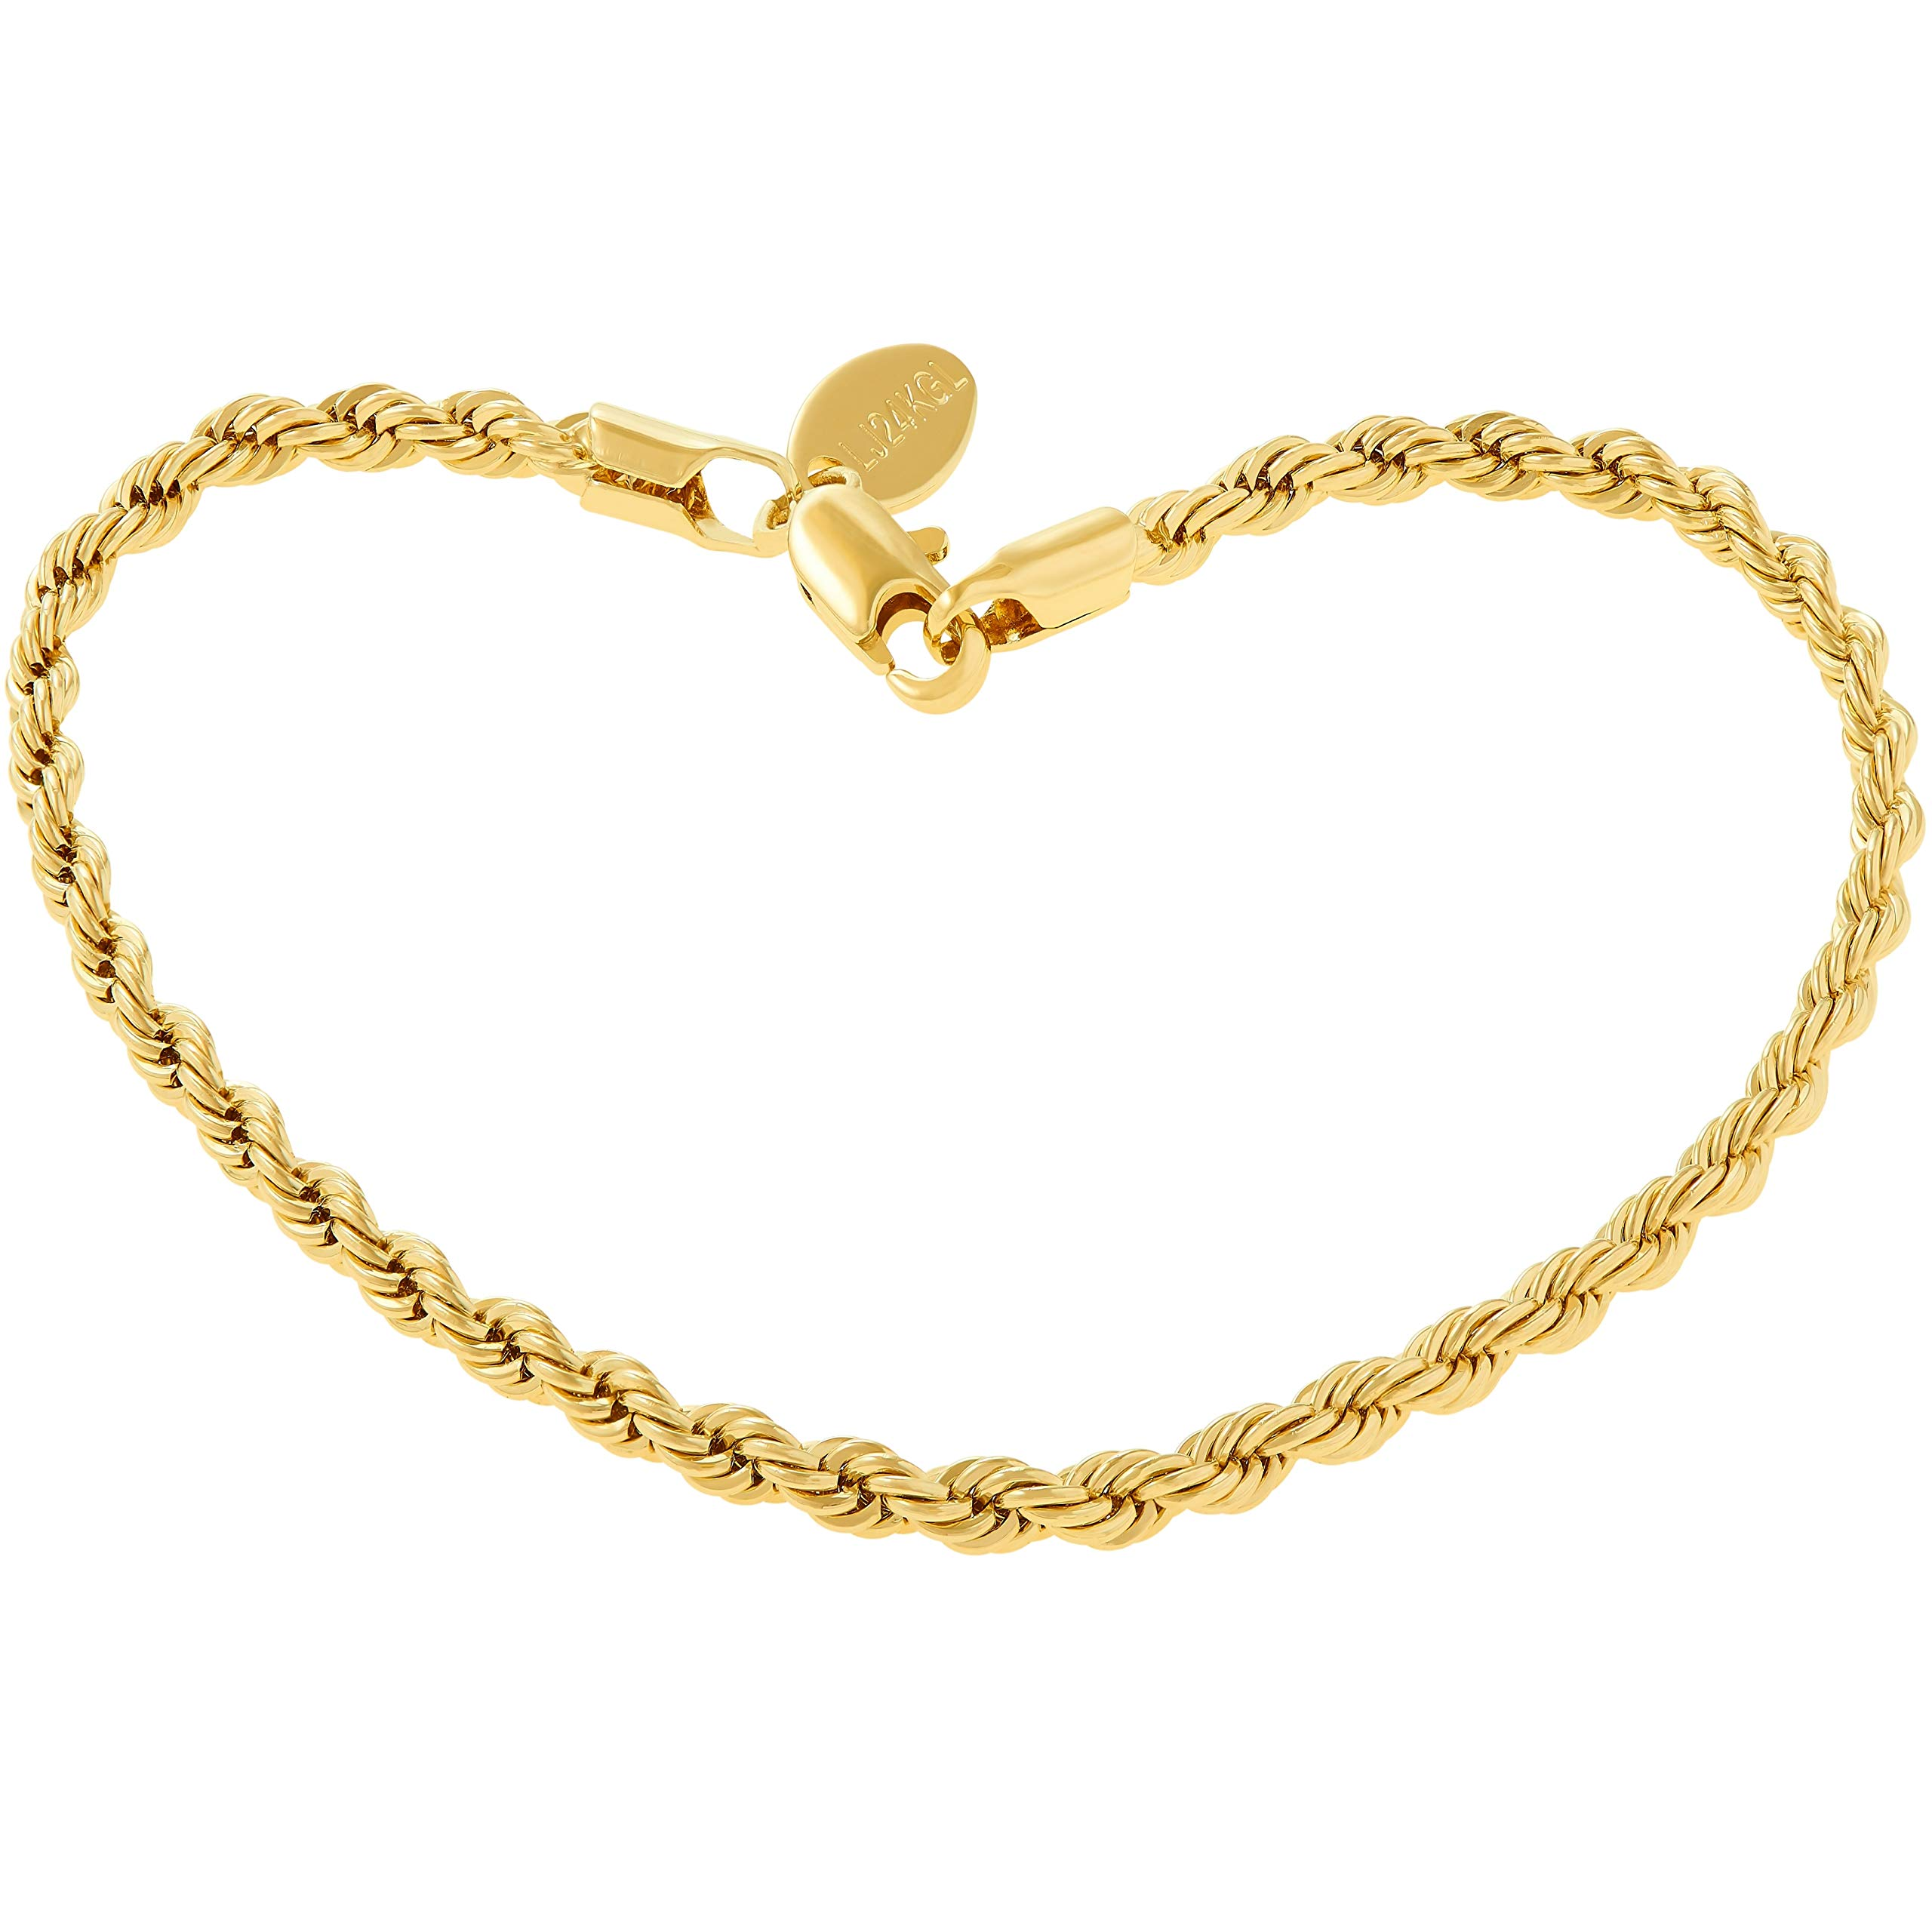 Lifetime Jewelry Ankle Bracelets for Women Men and Teen Girls - 3mm Rope Chain Anklet - Up to 20X More Real 24k Gold Plating Than Other Barefoot Chains (Gold-Plated-Bronze, 9.0)